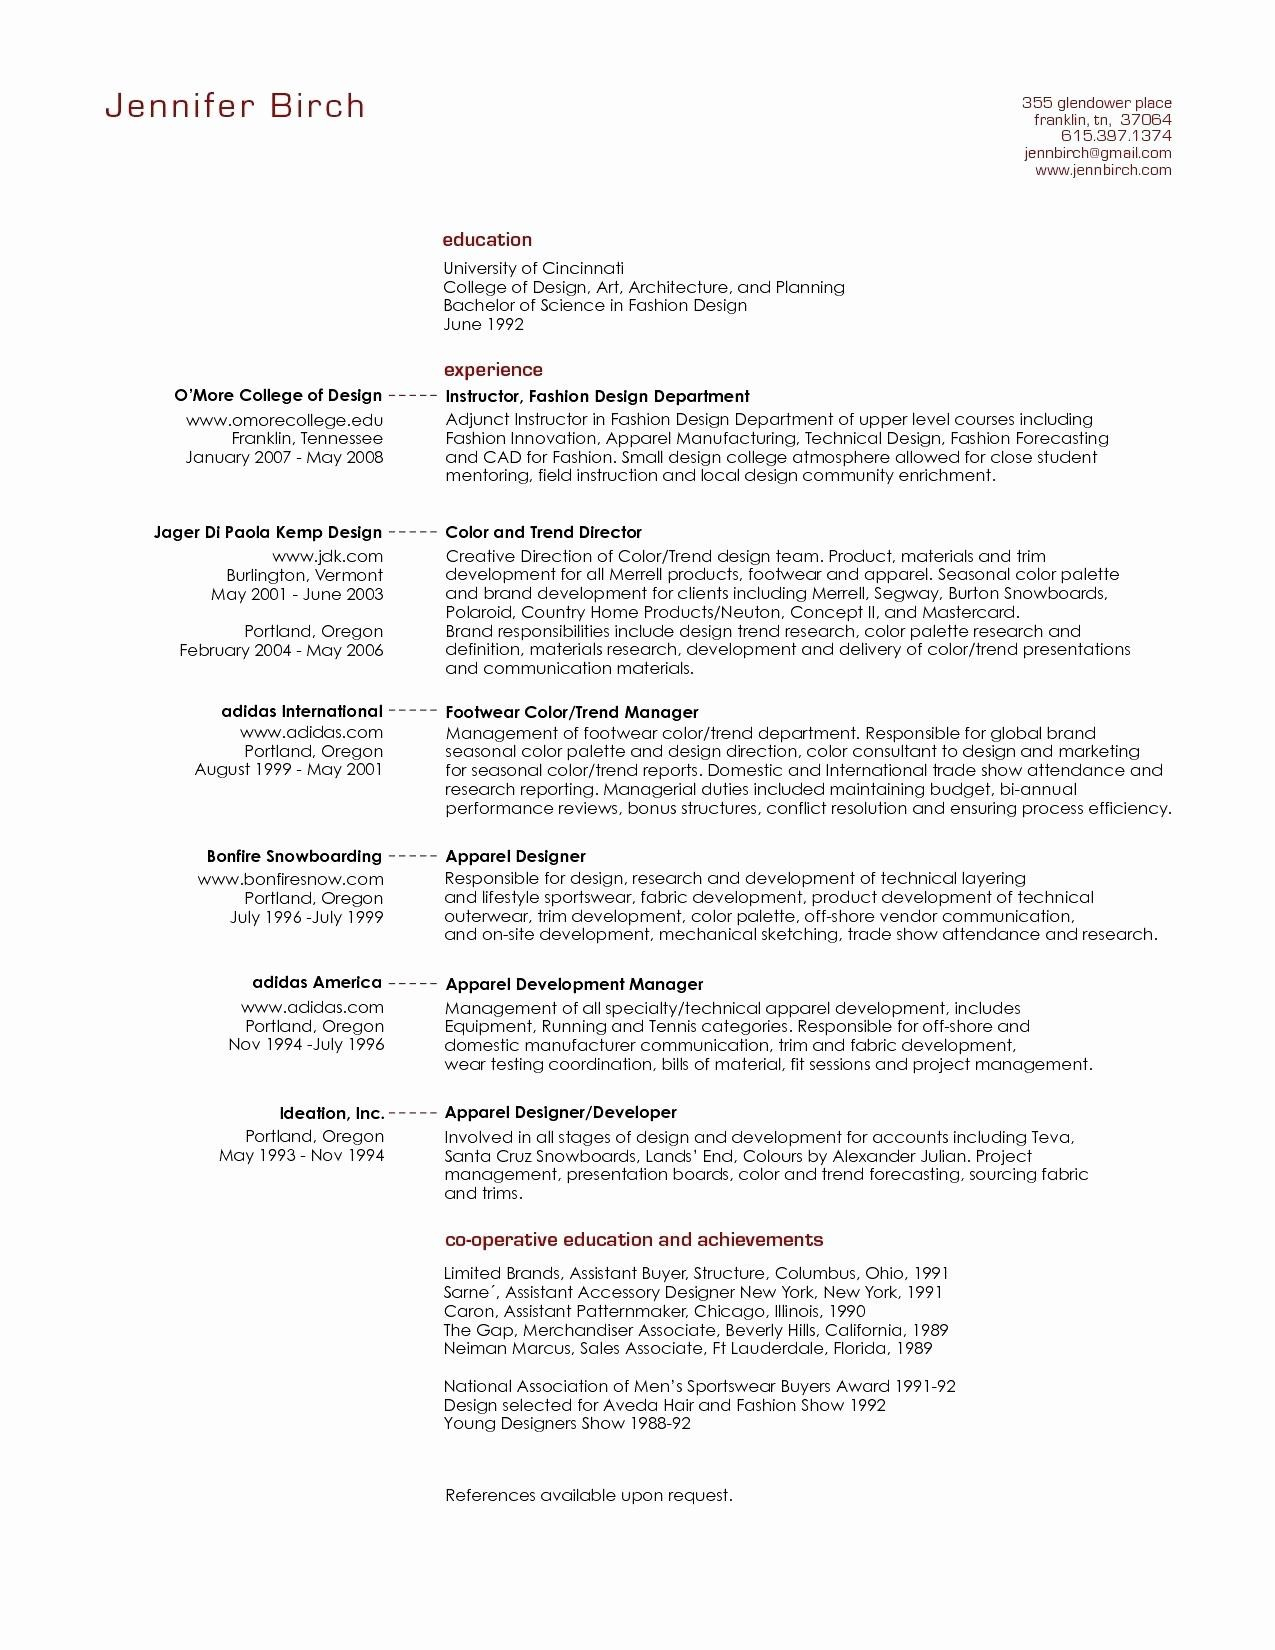 core competencies resume example Collection-Core petencies Resume Luxury 43 Unique Core Petencies Resume Examples Resume Templates Ideas Core petencies 18-n